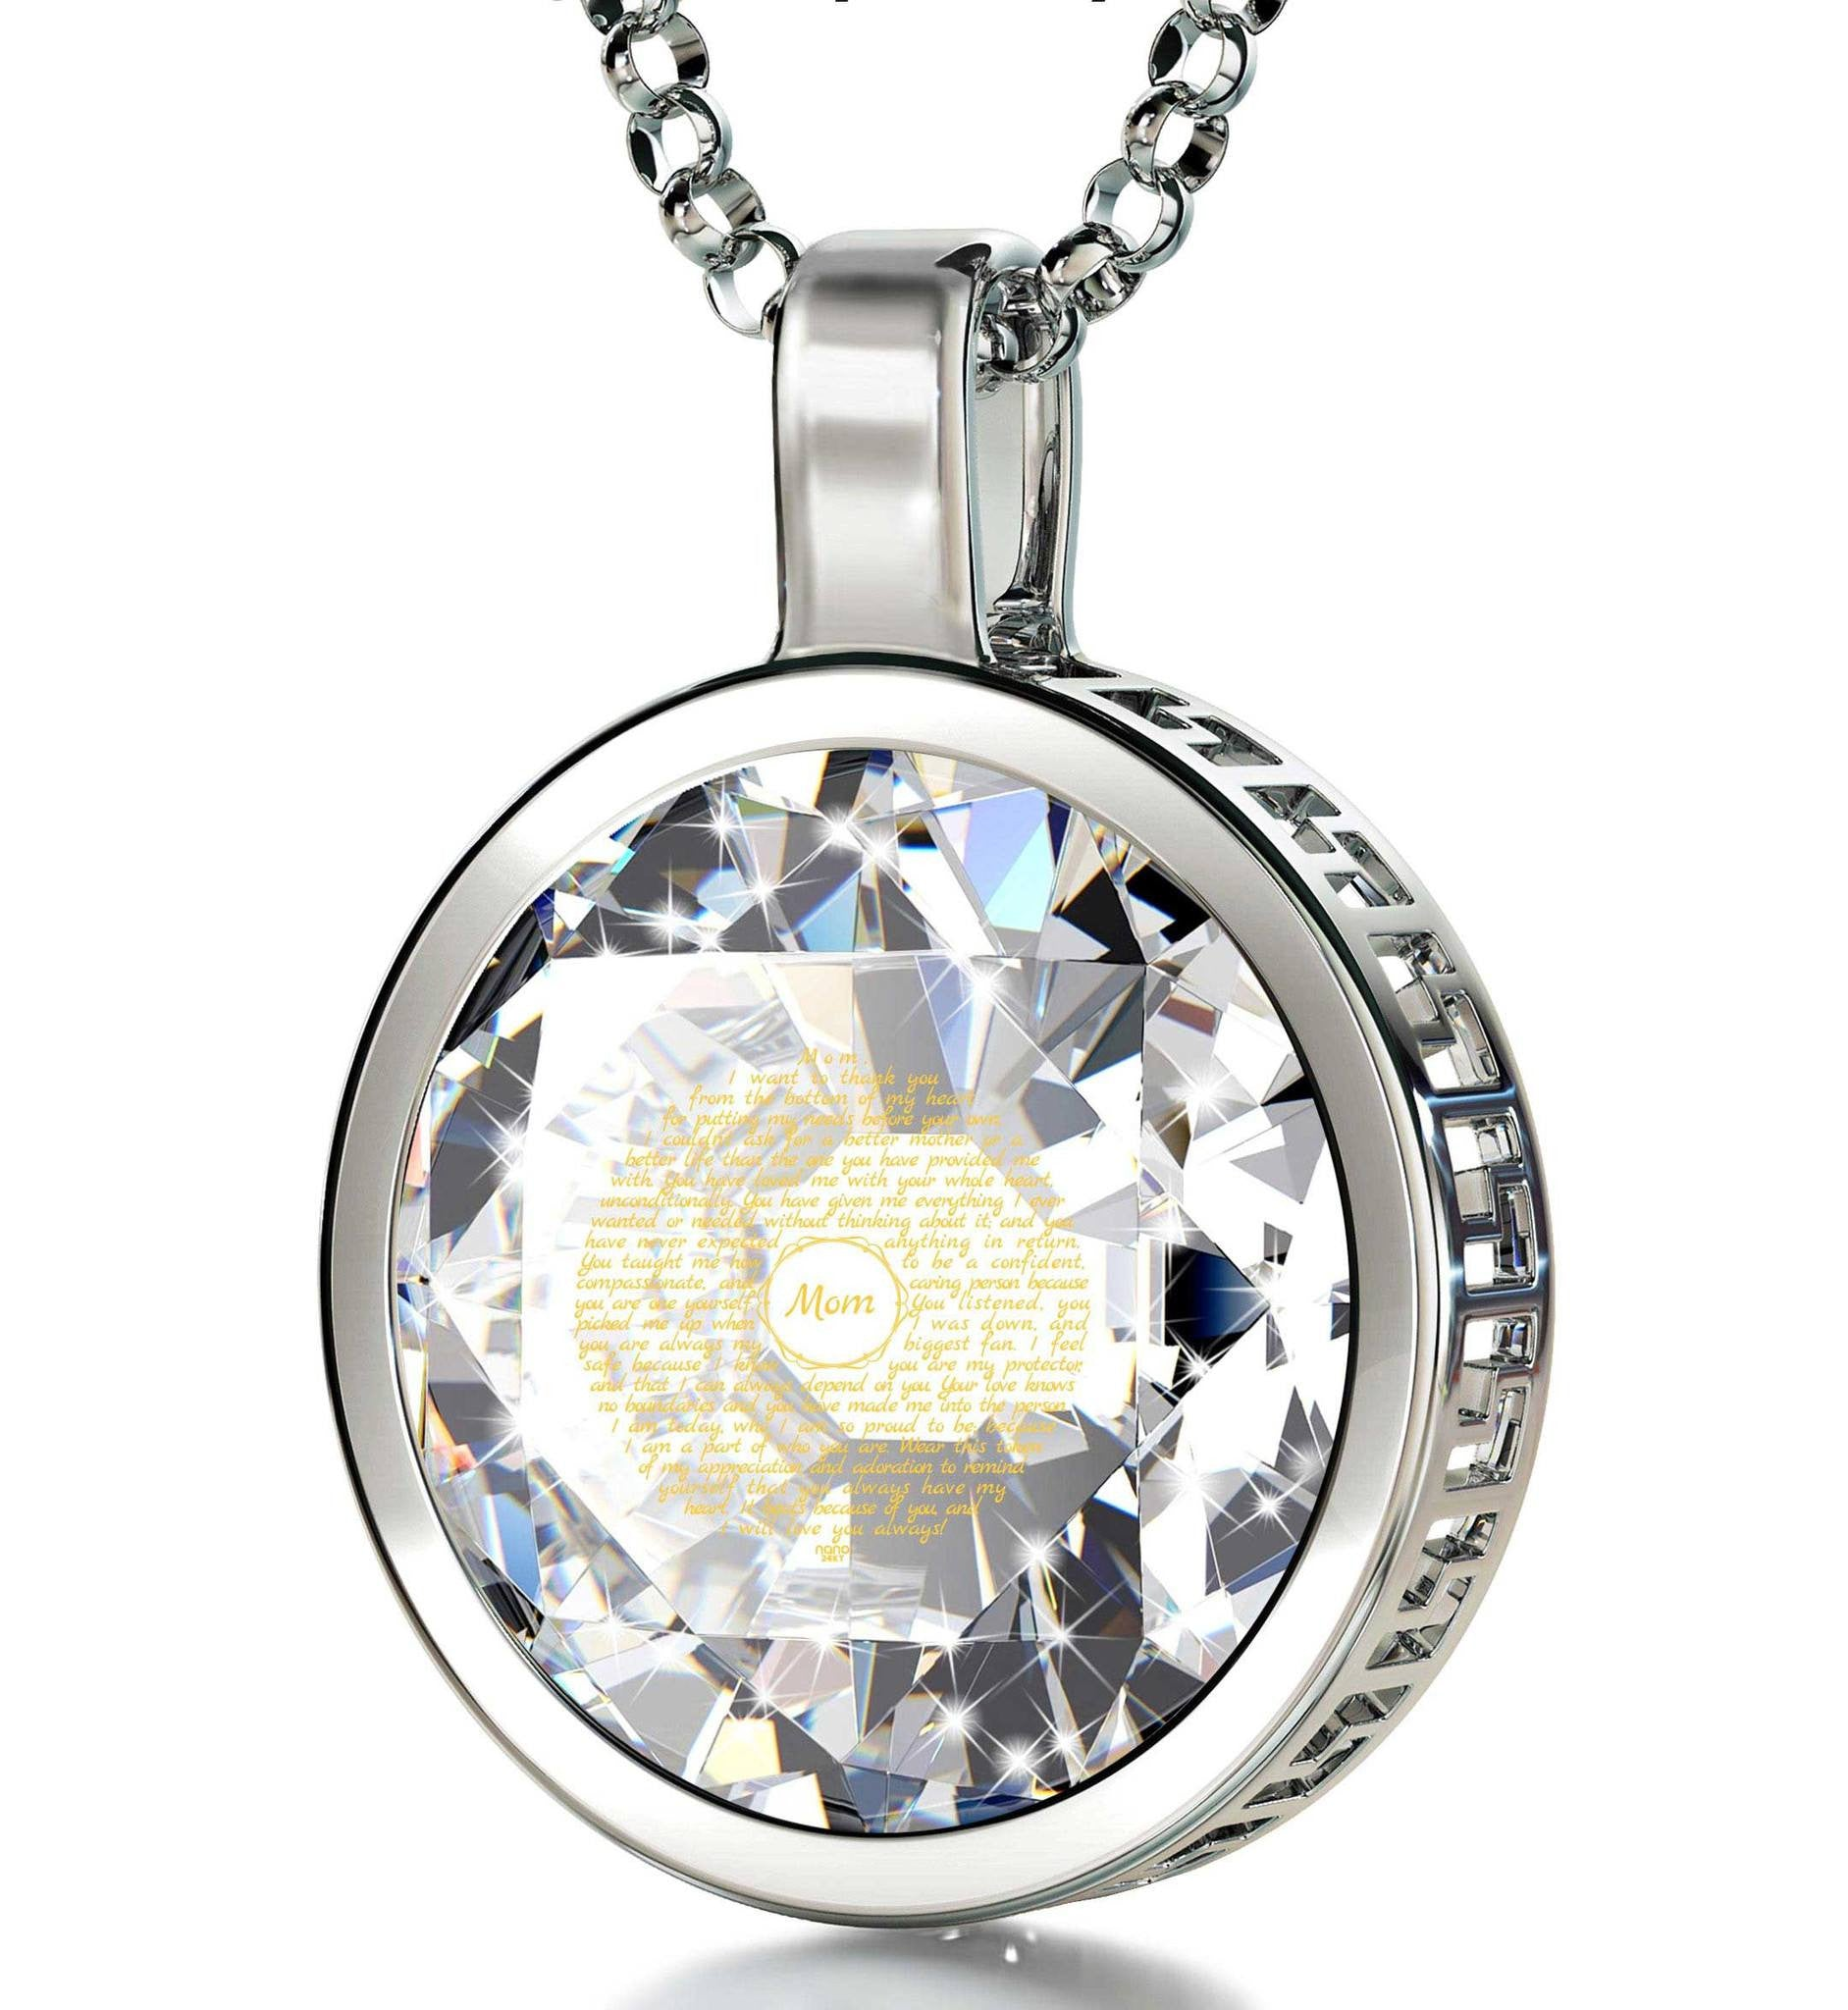 Special Mother's Day Gifts, 14k White Gold Engraved Jewelry, Valentines Gift for Mom, by Nano